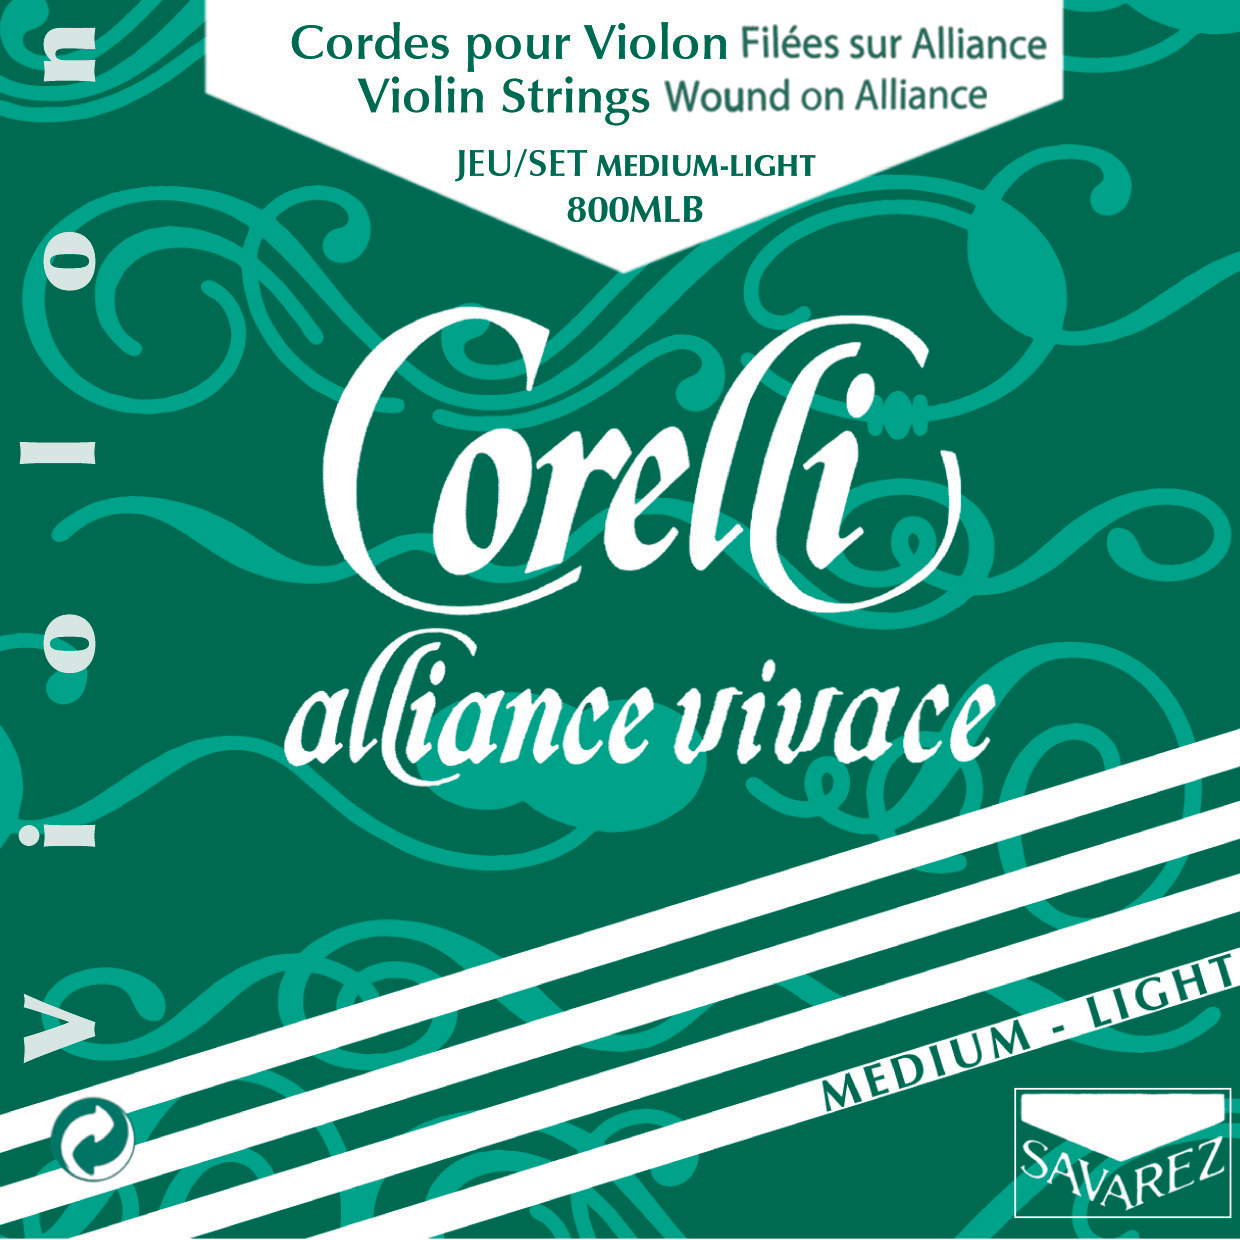 CORELLI ALLIANCE VIVACE MEDIUM LIGHT 800MLB VIOLIN